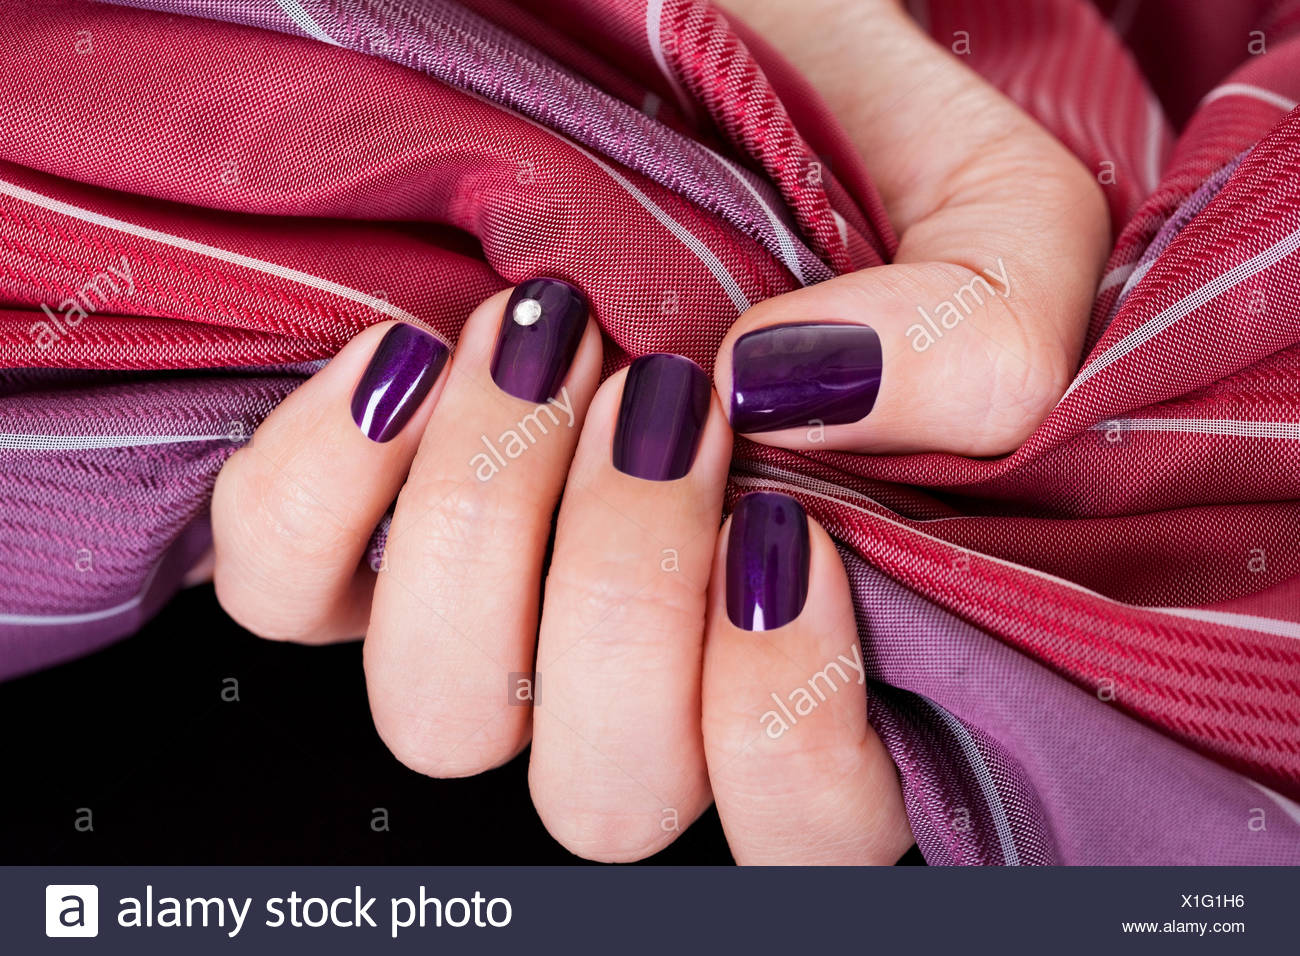 Maroon Nail Polish Stock Photos & Maroon Nail Polish Stock Images ...